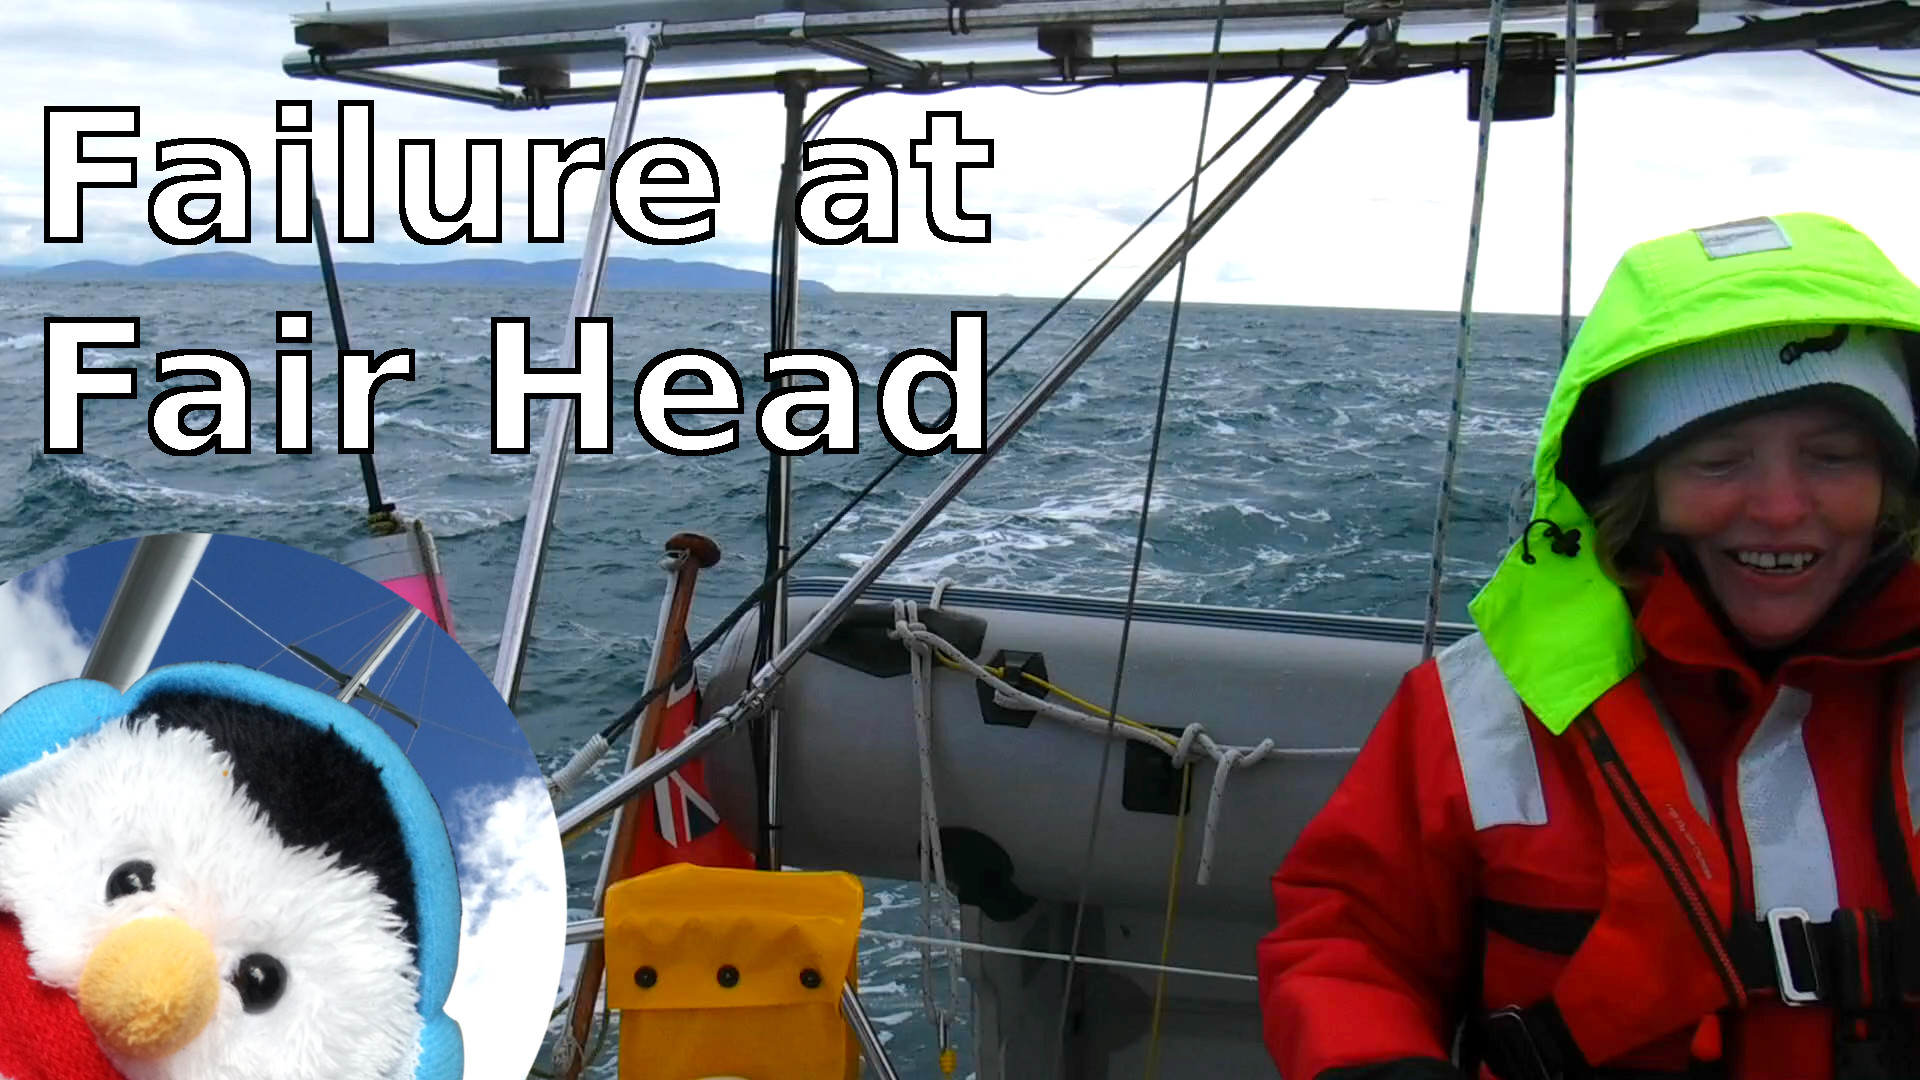 """Watch our """"Failure at Fairhead"""" video and add comments etc."""